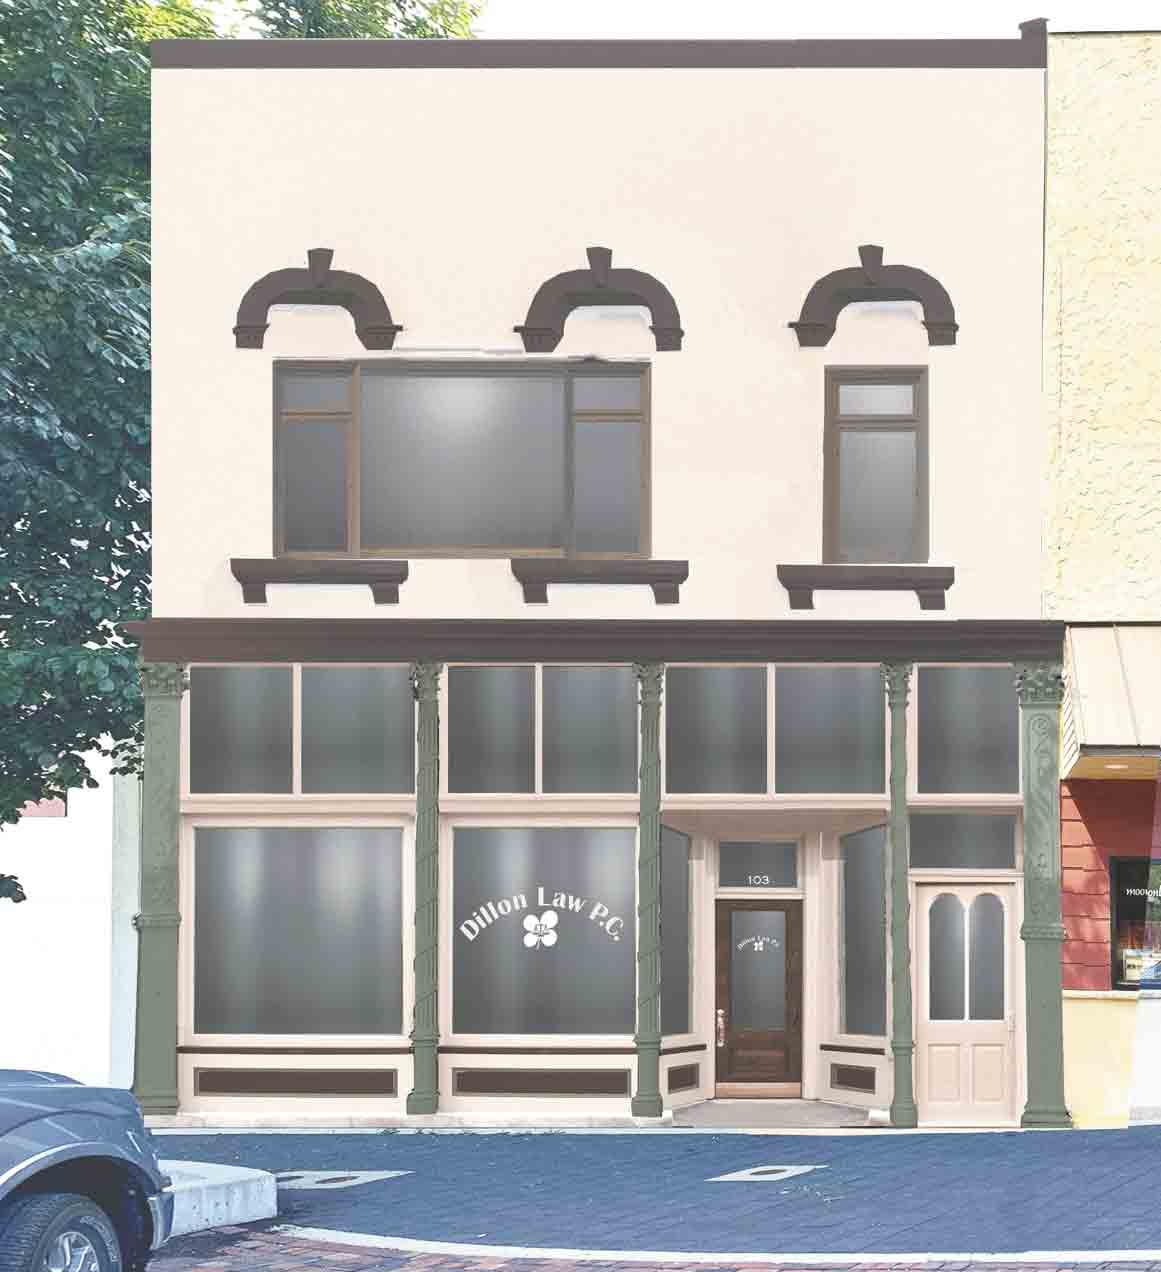 Main Street Iowa created the design concept proposal for the rehabilitation of the Dillon Law Office in West Union.Makeover proposed for downtown WU business frontBy Jack Swansonjswanson@fayettecountynewspapers.comI t appears a historic downtown building will be getting a new...